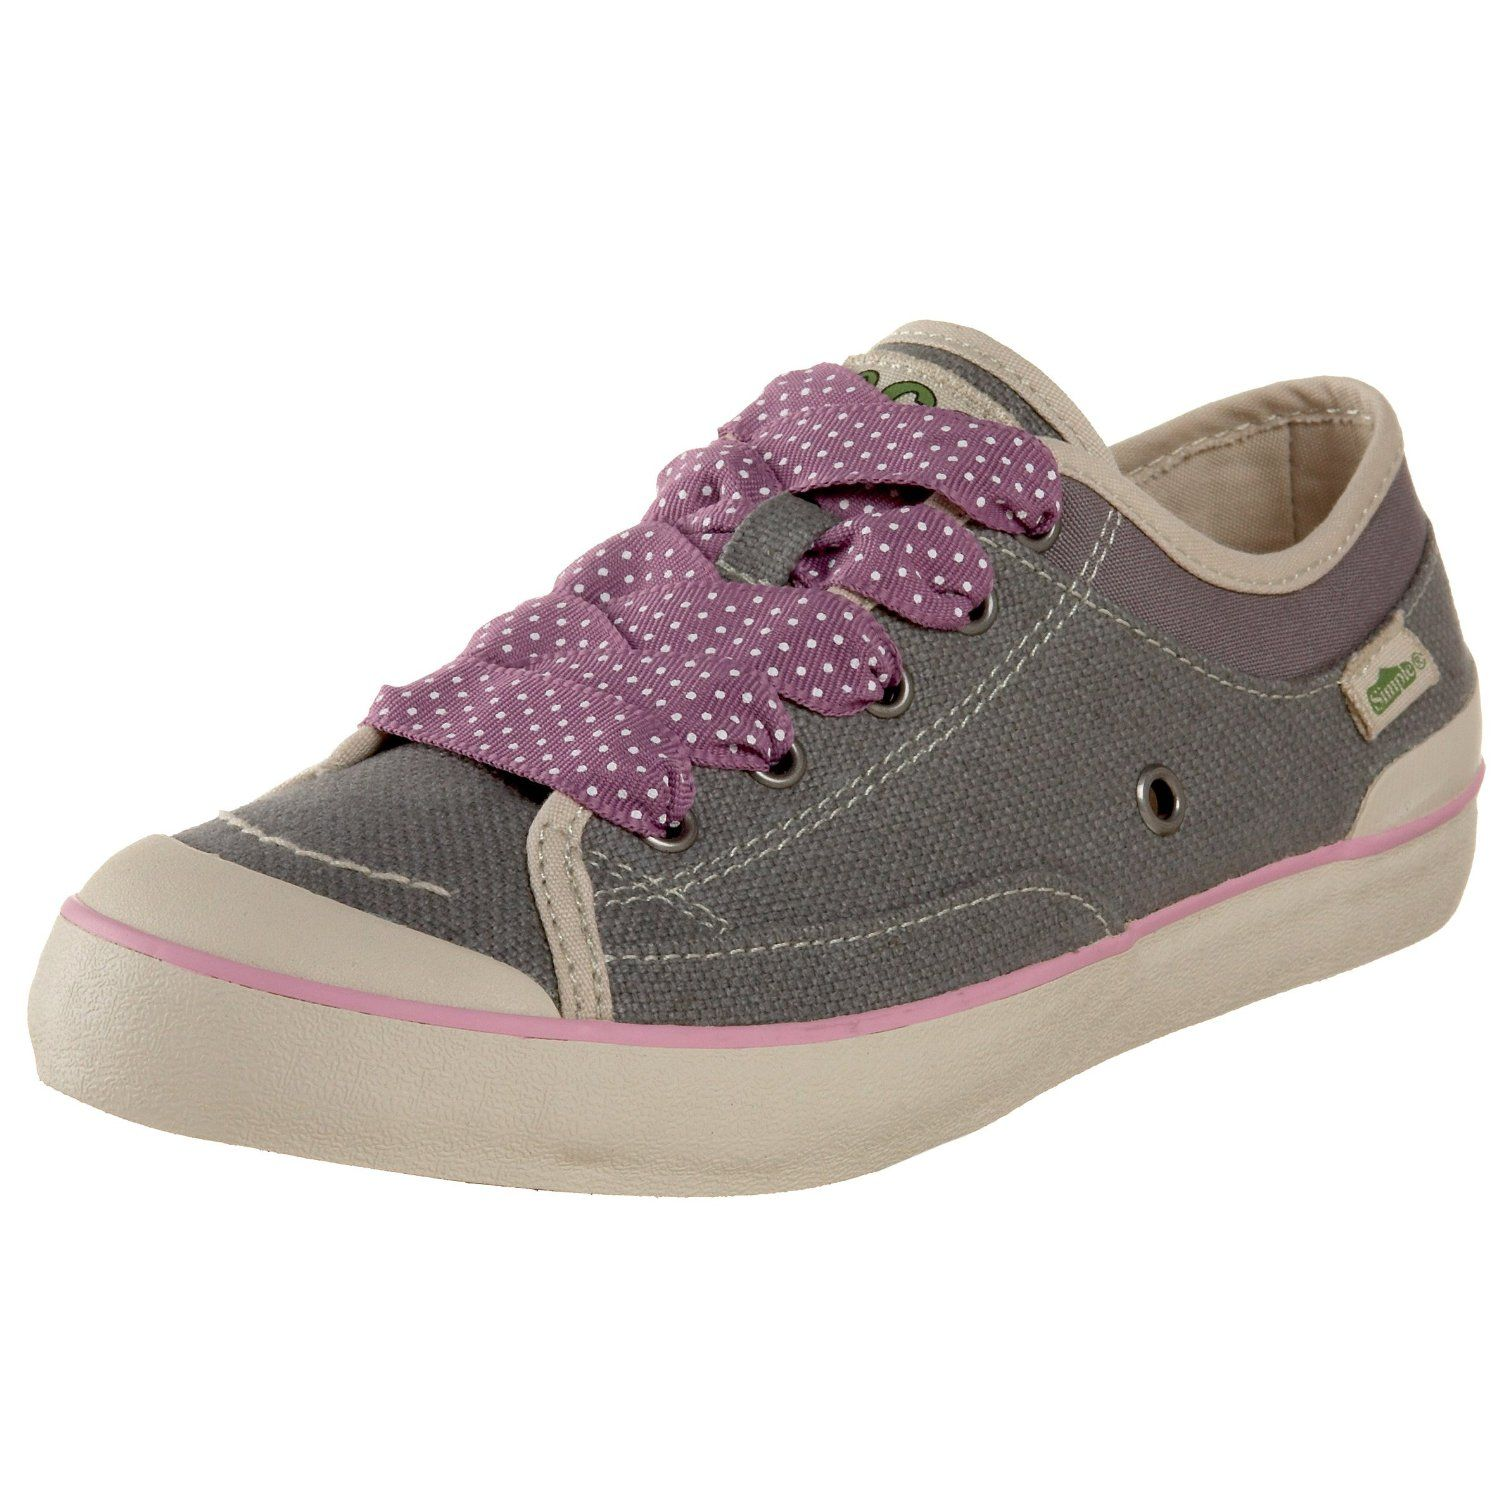 Simple Shoes Eco Sneaks - Hemp Organic Cotton Recycled